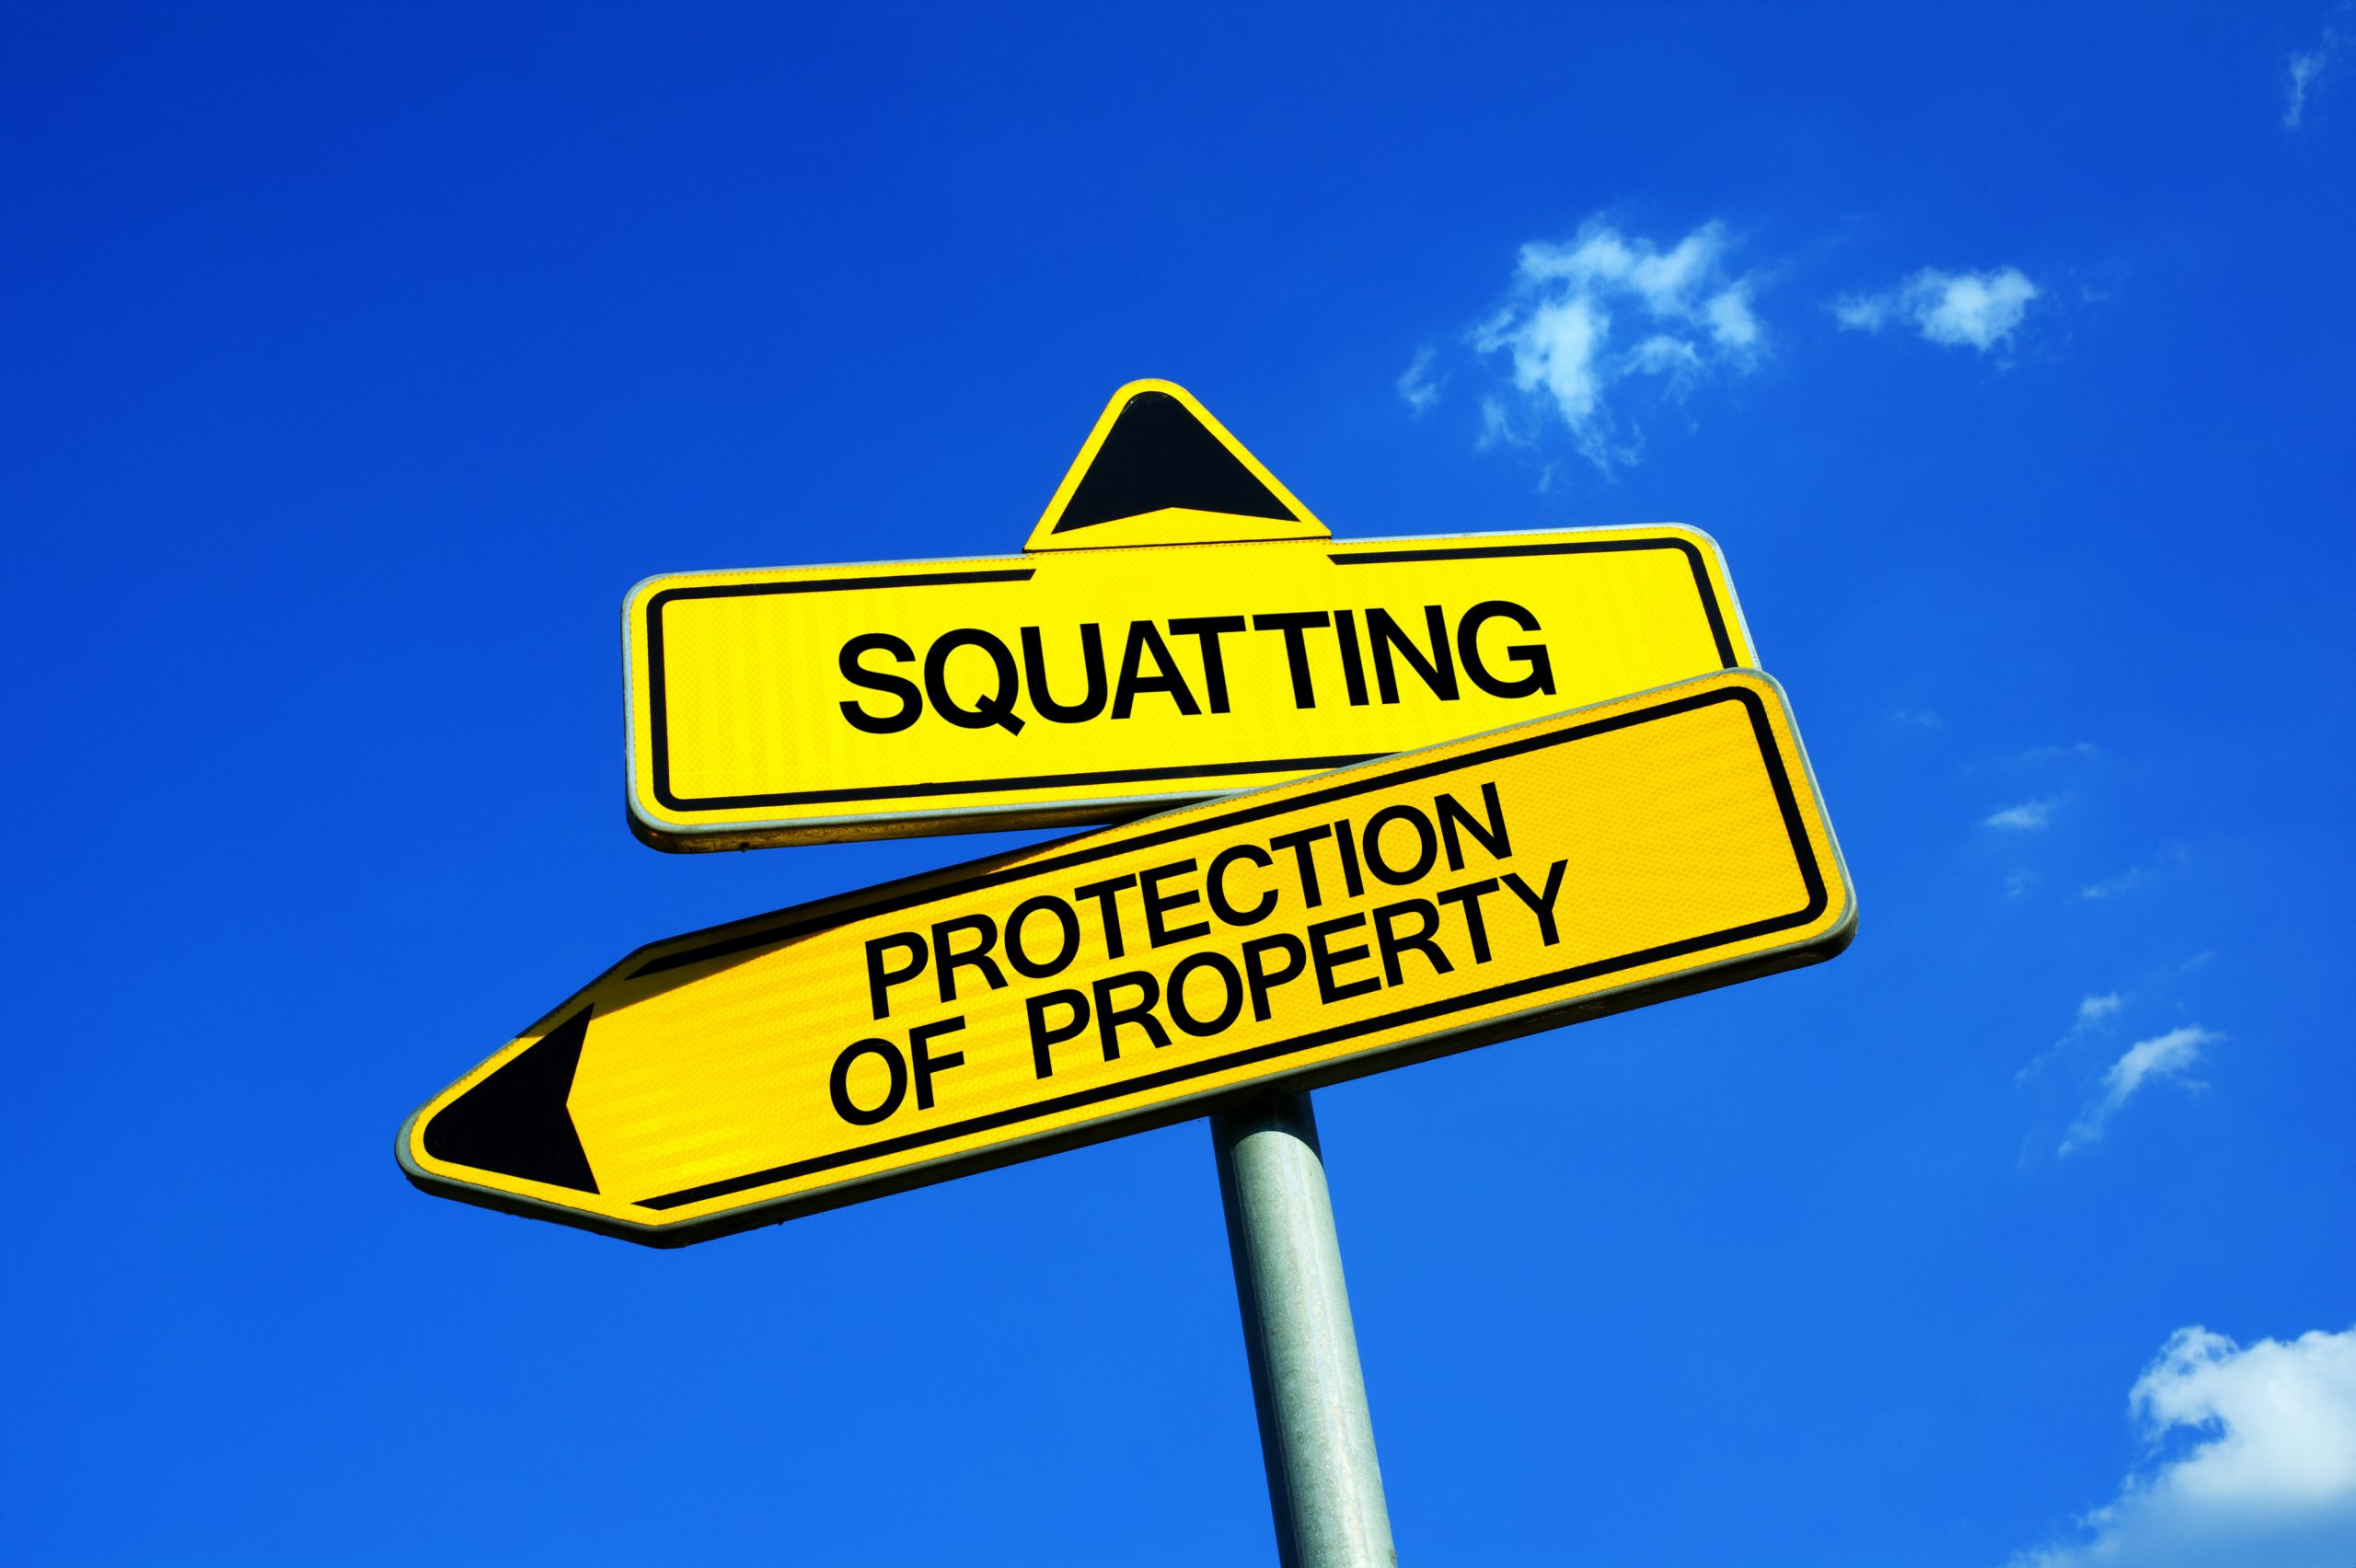 Need to Remove Squatters in Your Home in Broward or Palm Beach County Florida